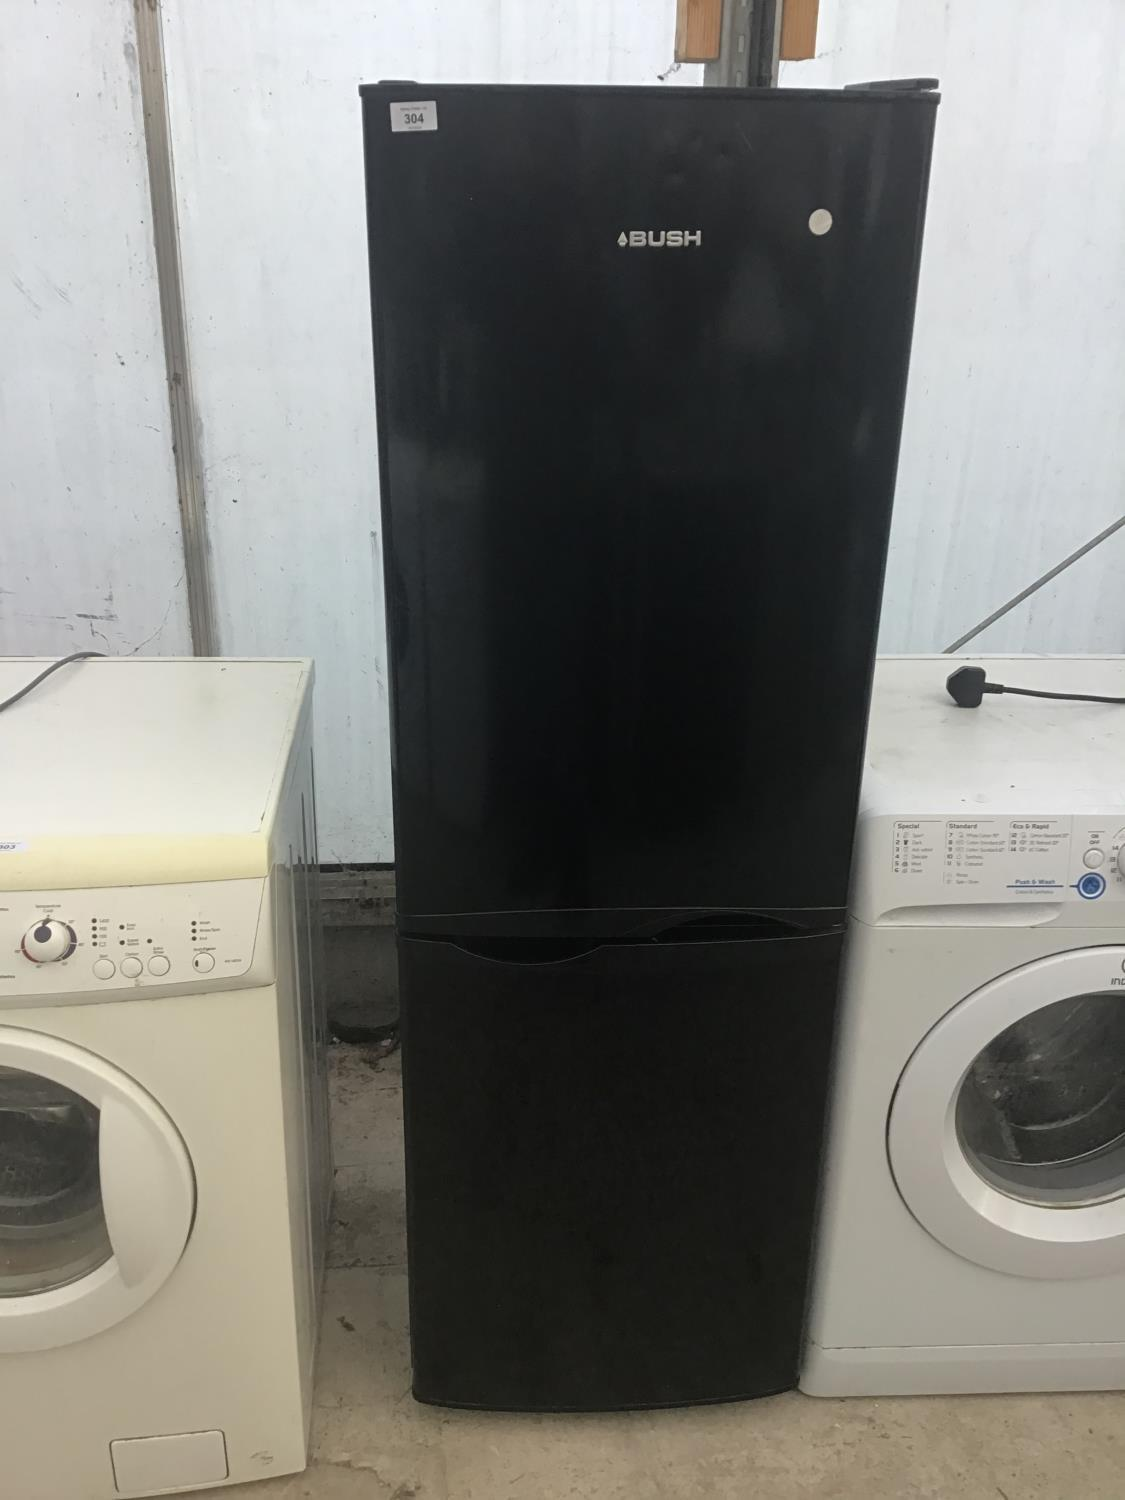 Lot 304 - A BLACK BUSH FRIDGE FREEZER IN WORKING ORDER WITH NEED OF MINOR CLEAN